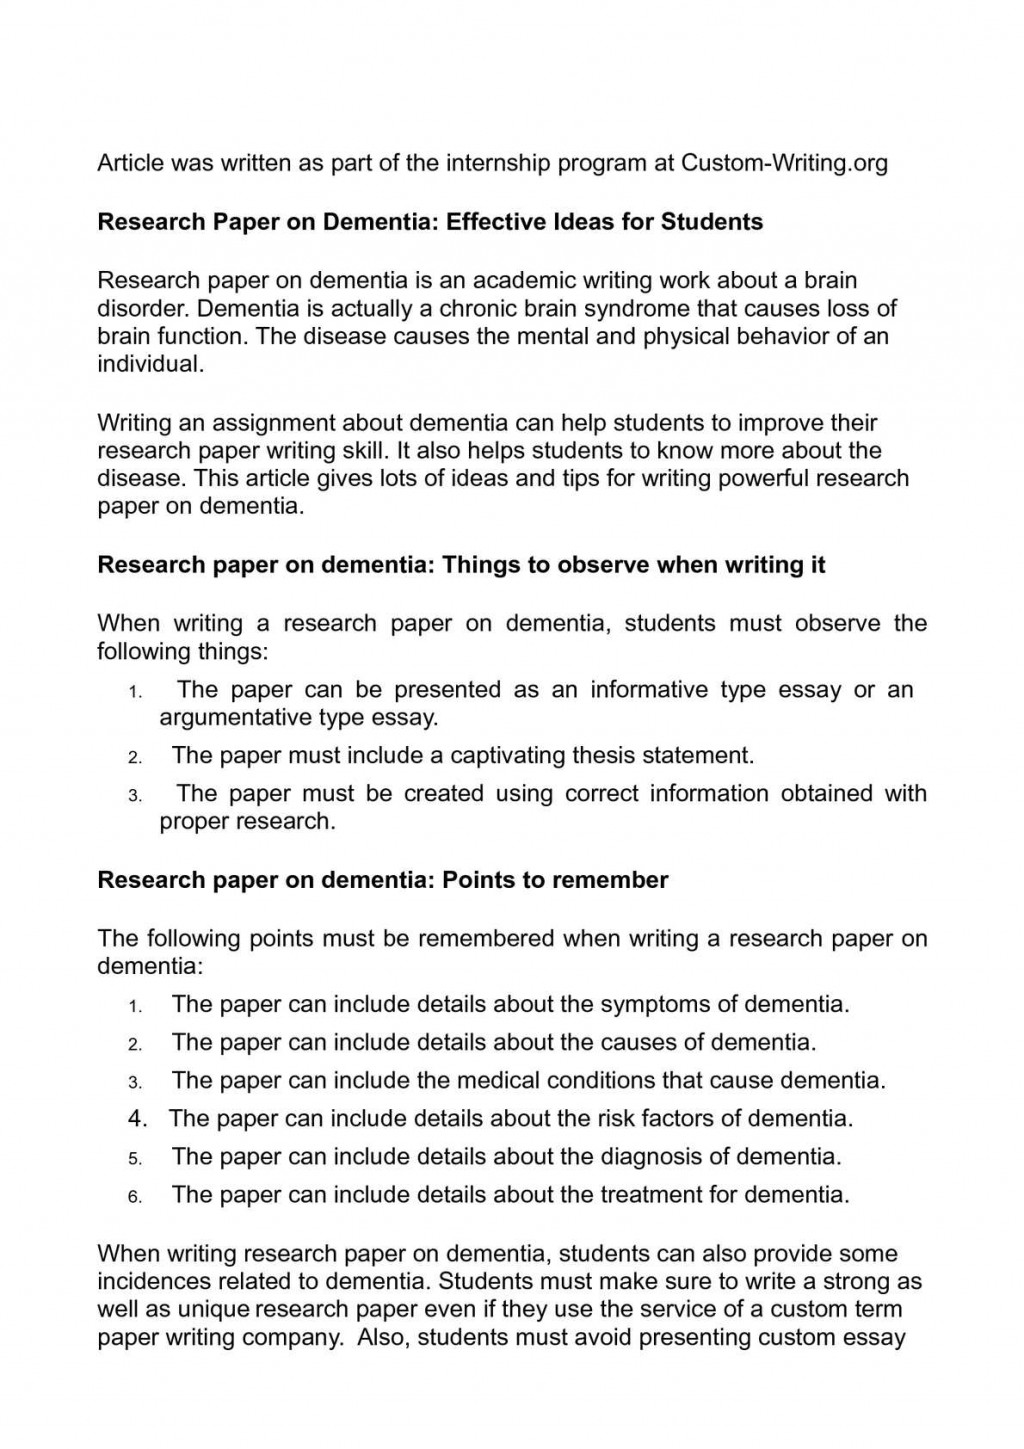 009 Research Paper Unique Ideas Imposing In Psychology For High School Titles Students Large